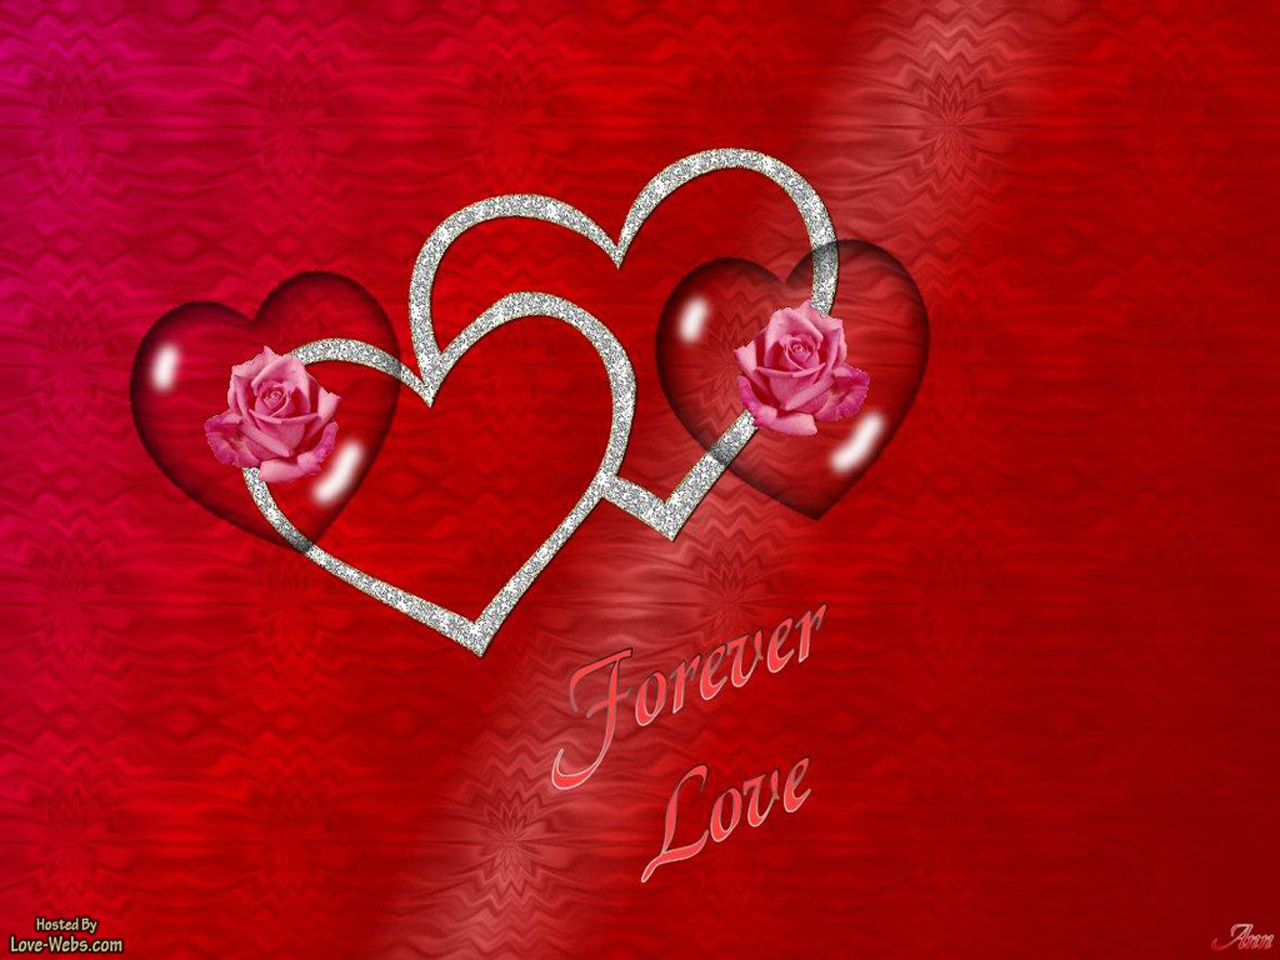 Love Wallpaper In Name : All In One computer, Mobiles, Software, Keys, Islamic Wallpapers, Others Wallpapers, Videos ...